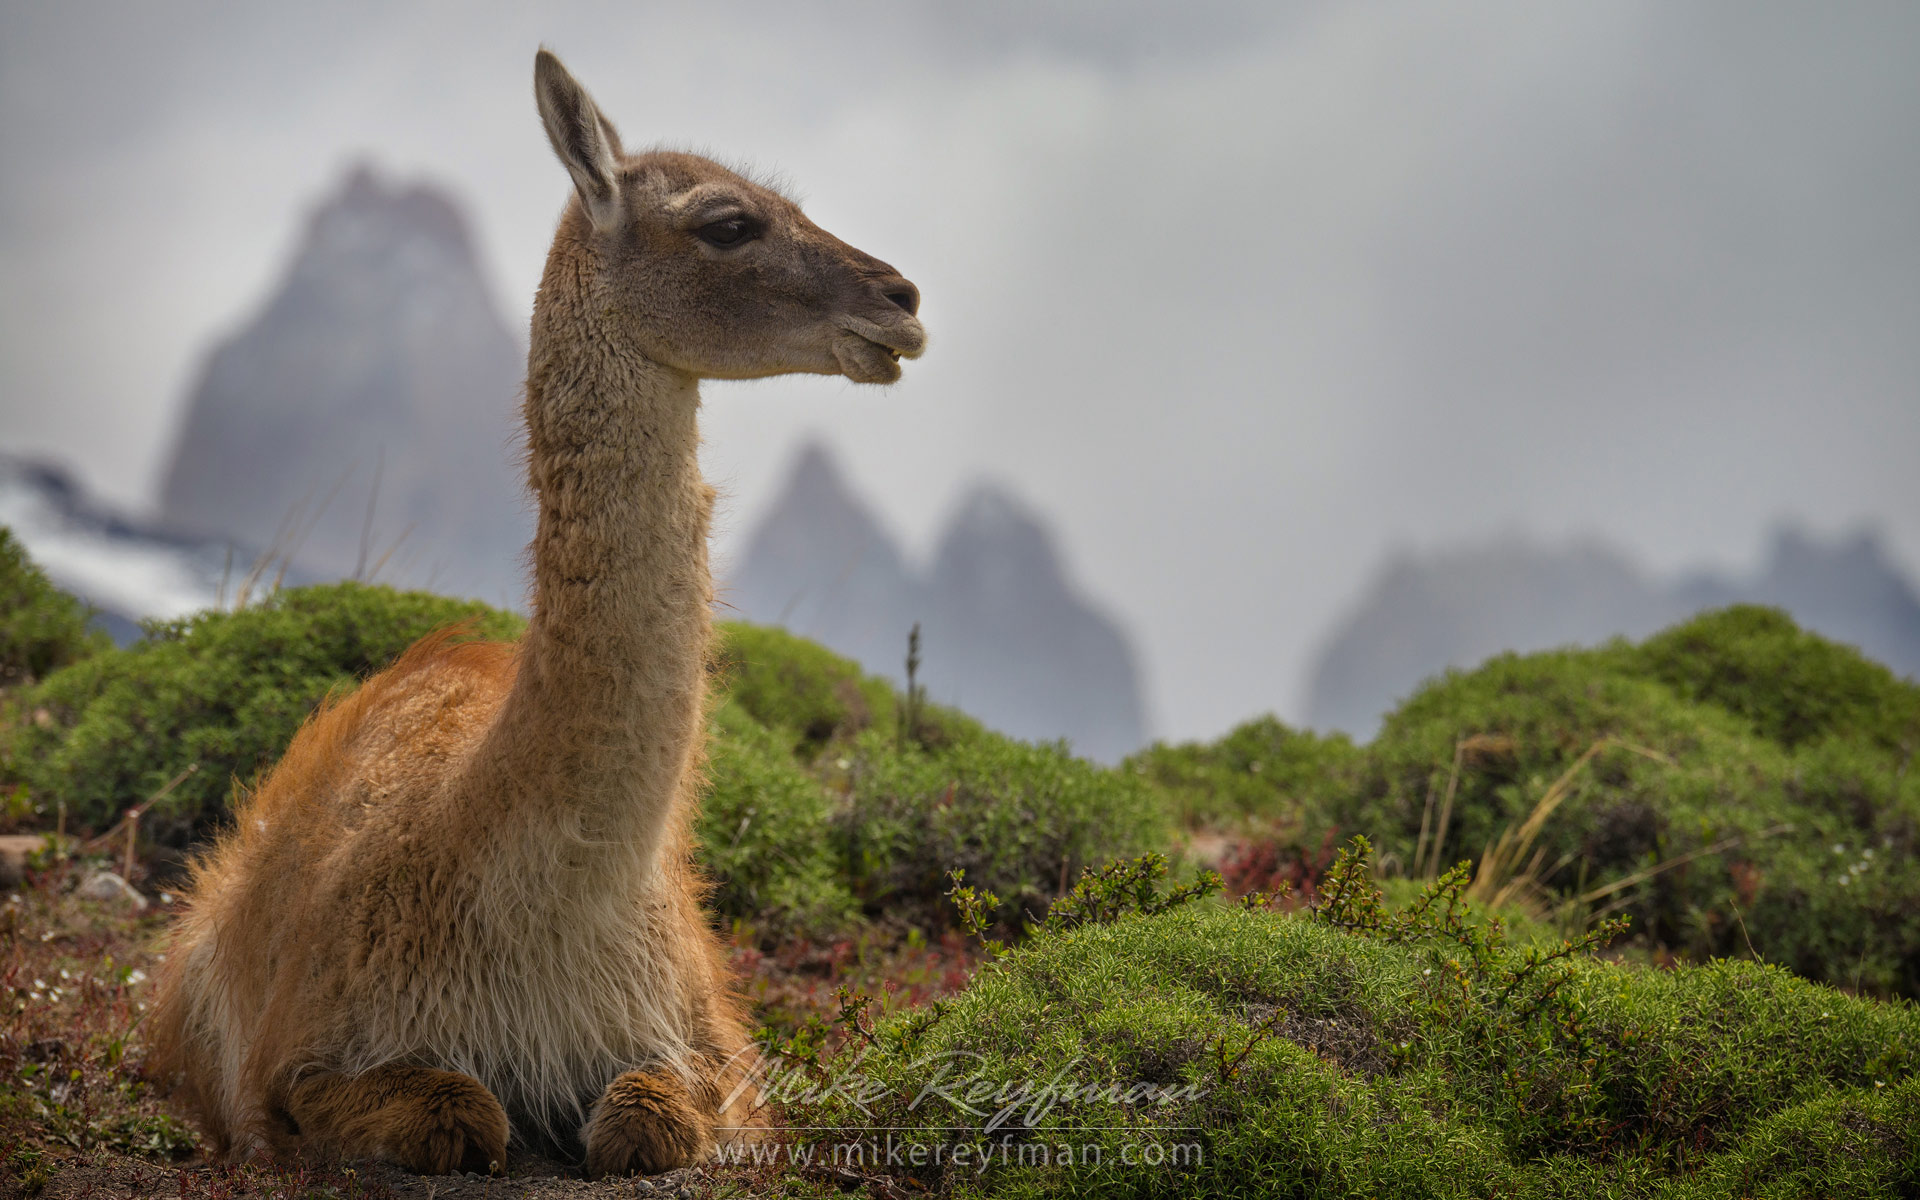 Guanaco (Lama guanicoe) sitting on hill top. Towers of Paine are on the backdrop. Torres del Paine National Park, Magallanes and Antartica Chilena Region XII, Patagonia, Chile. - Patagonia-Wildlife-and-Horses - Mike Reyfman Photography